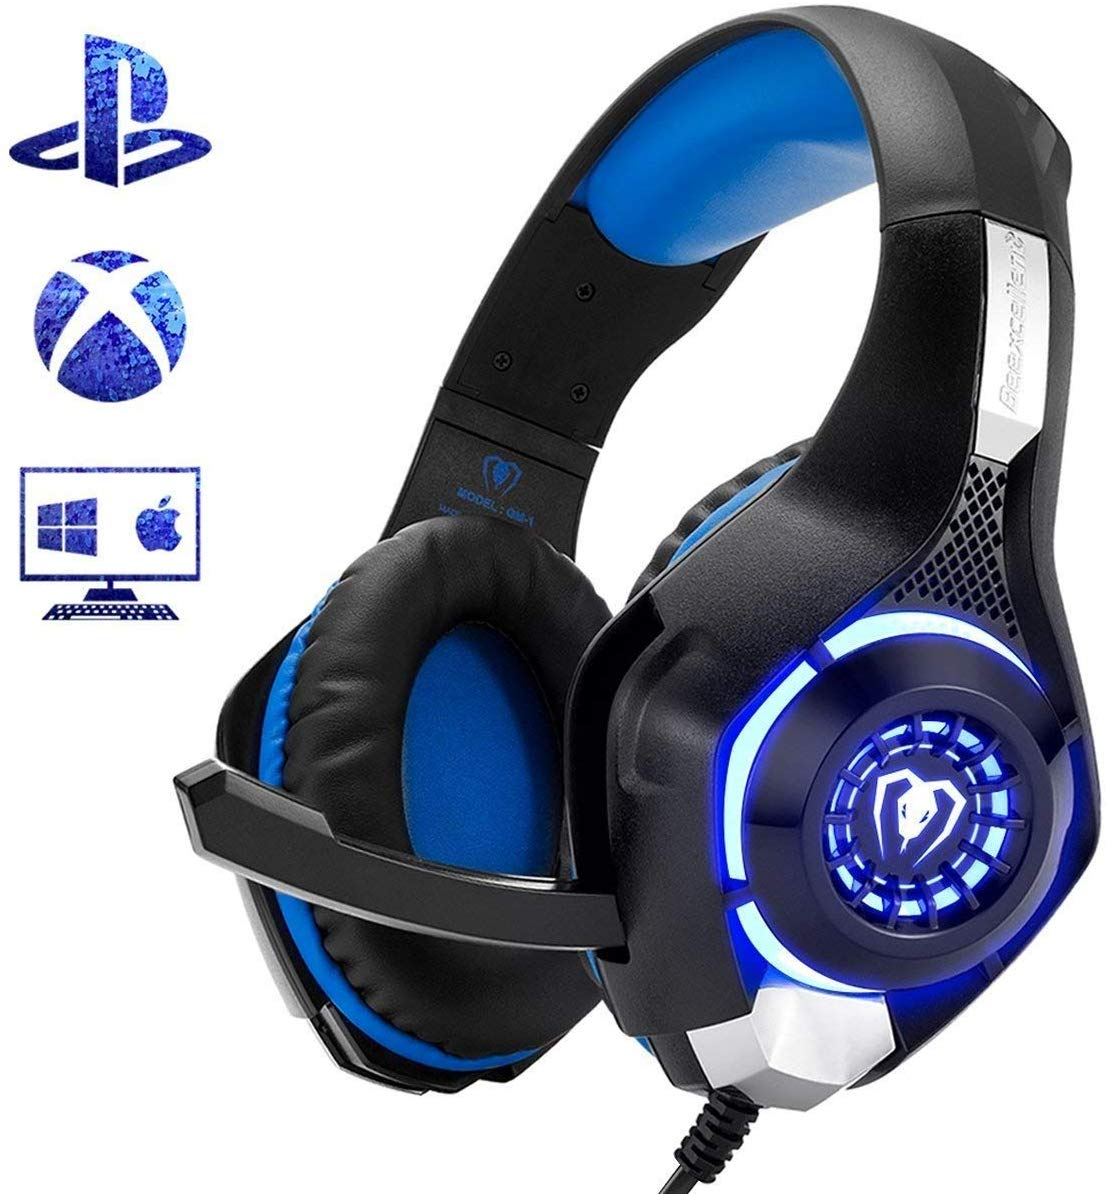 Beexcellent Gaming Headset for PS4 Xbox One PC Mac Controller Gaming Headphone with Crystal Stereo Bass Surround Sound, LED Light & Noise-Isolation...